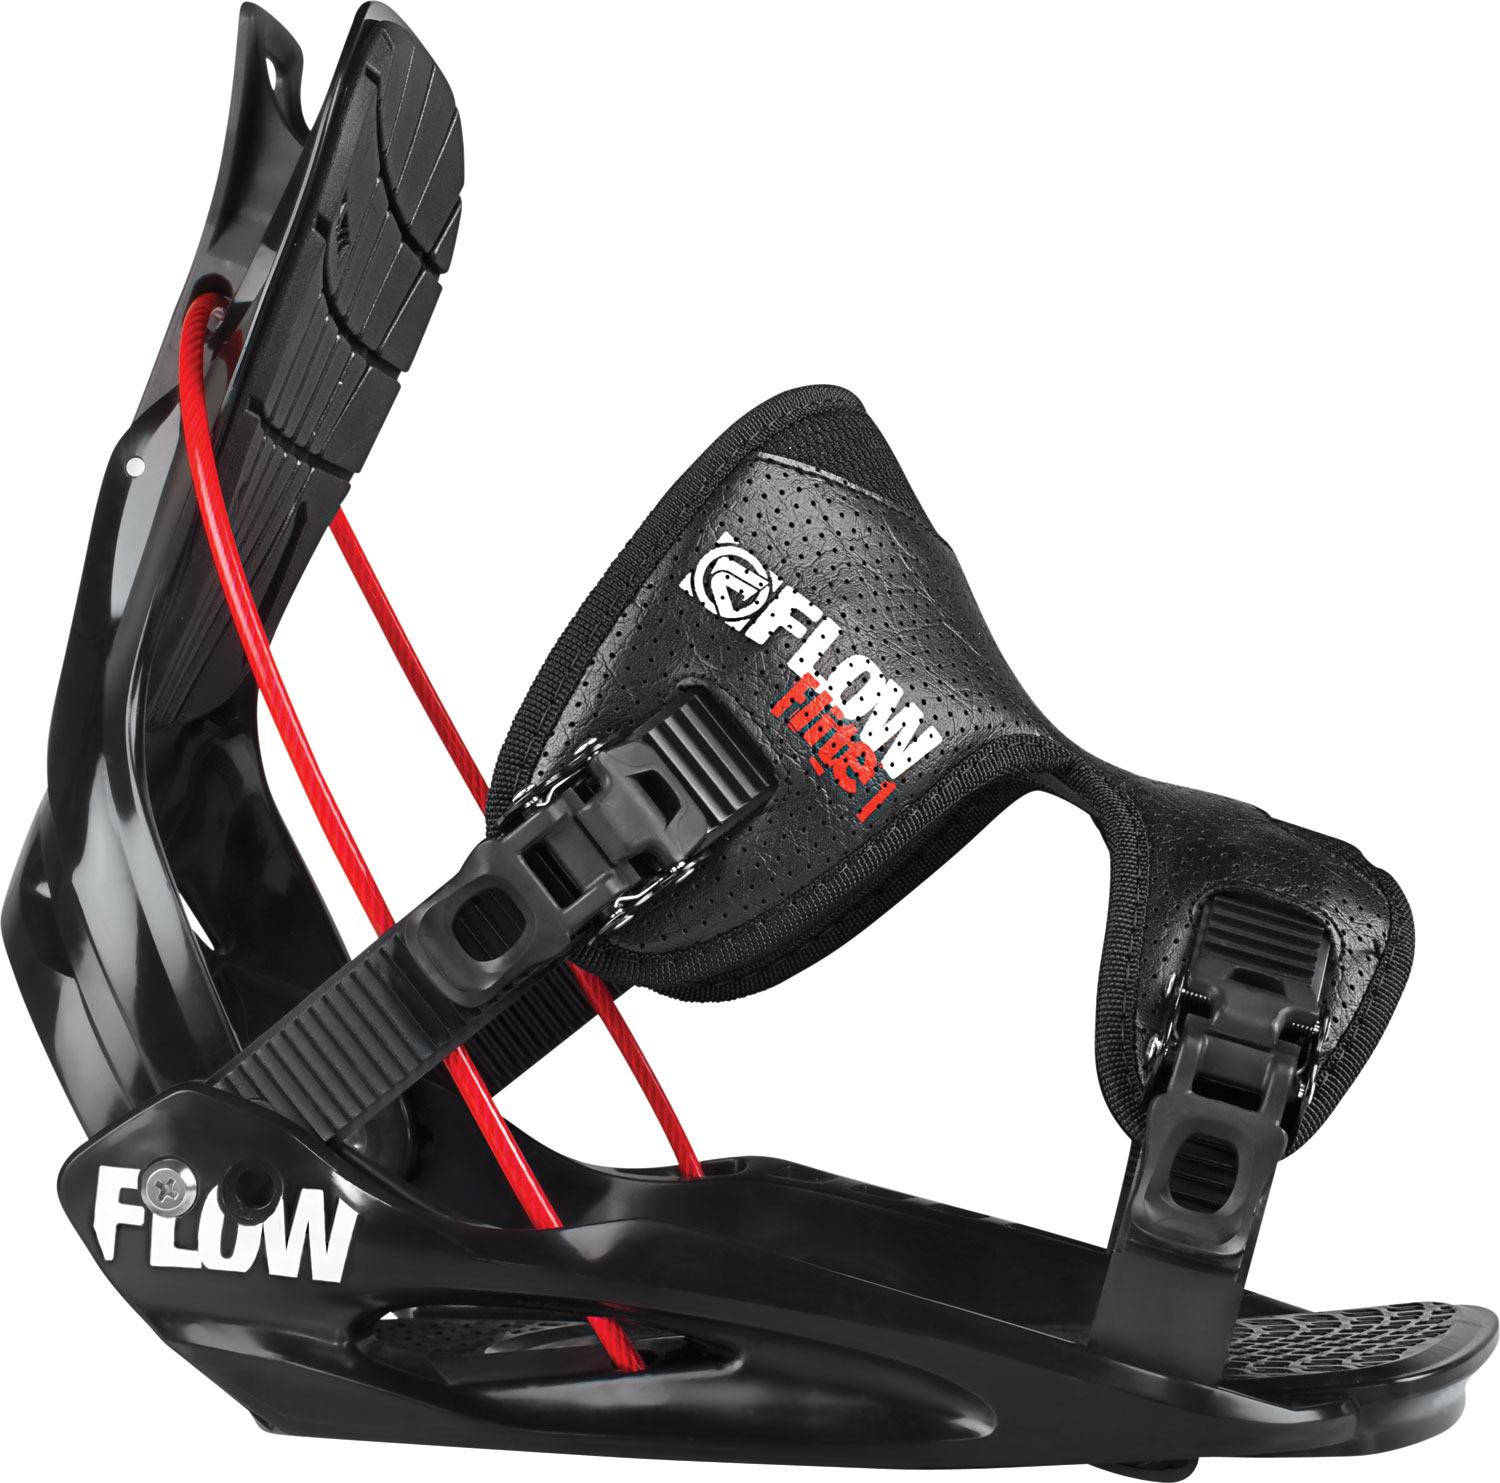 Flow Snowboard Bindings Replacement Parts